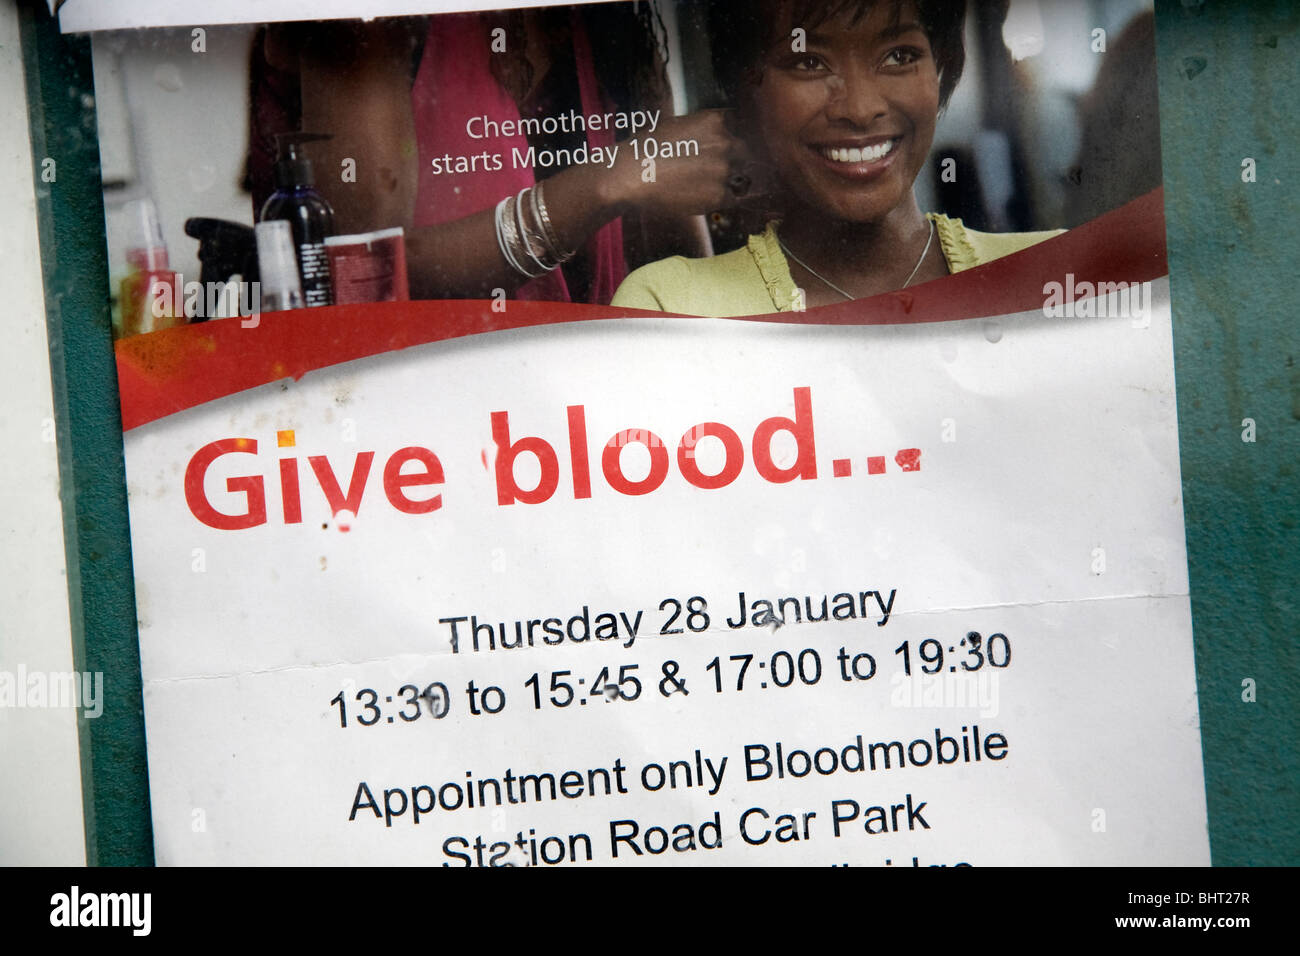 Give Blood donor advert sign - Stock Image